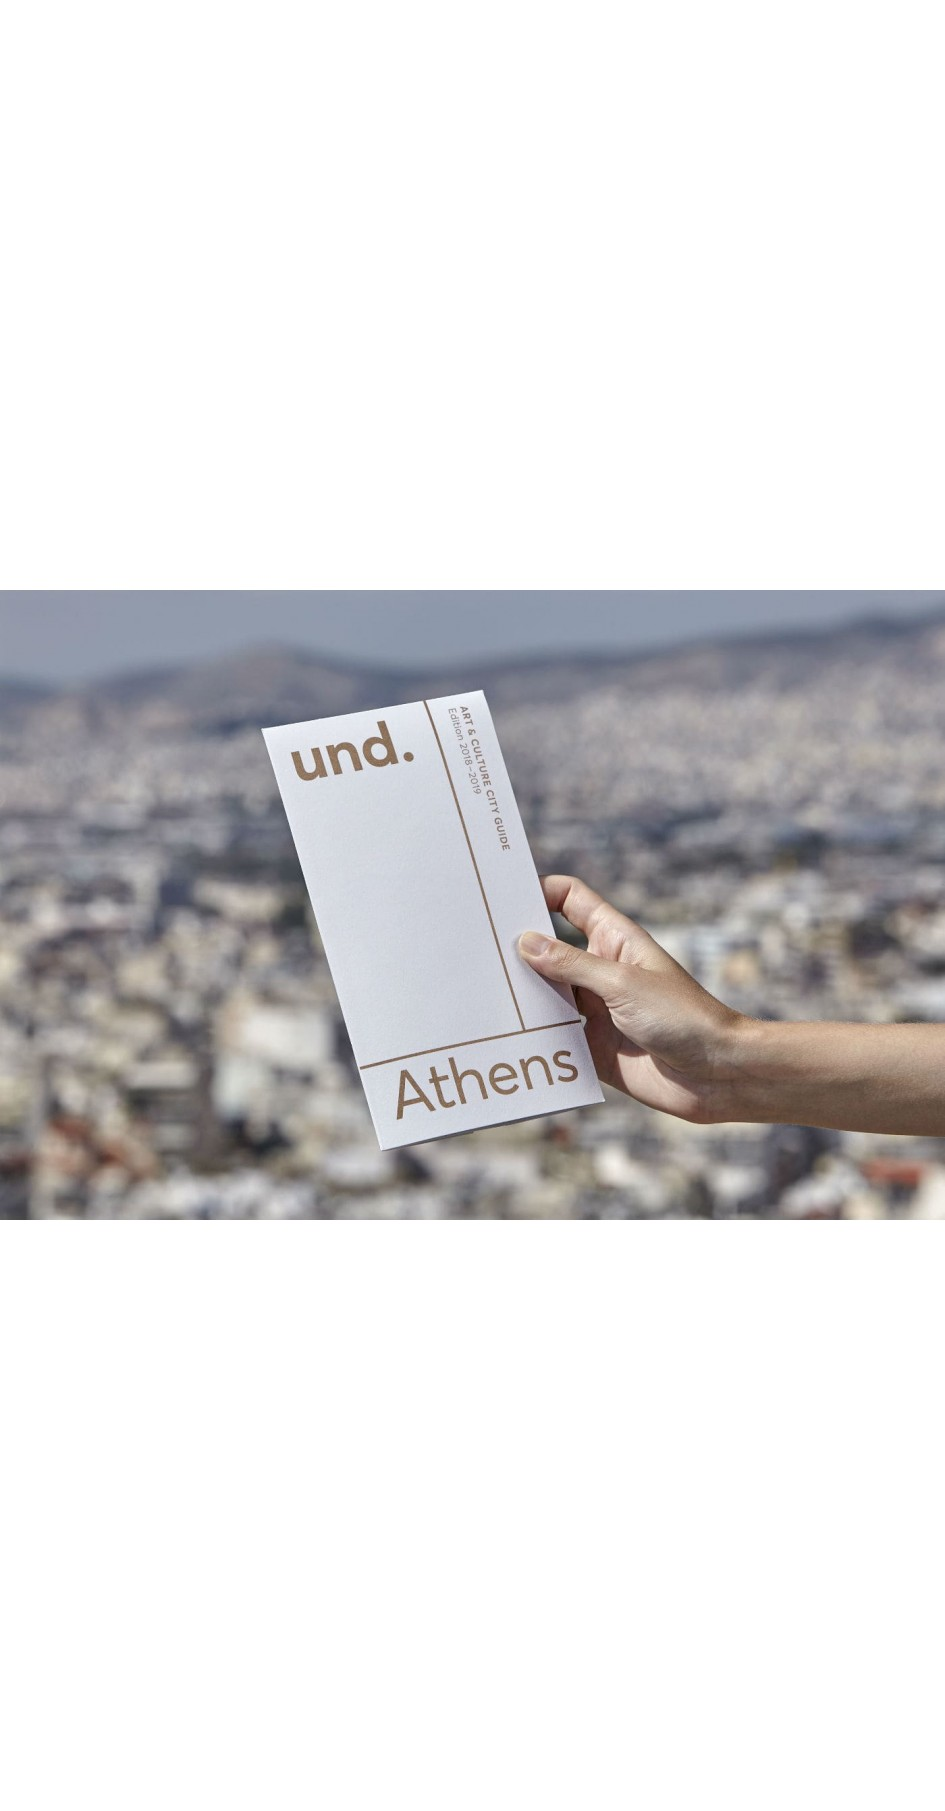 und.Athens | map for art activity in Athens